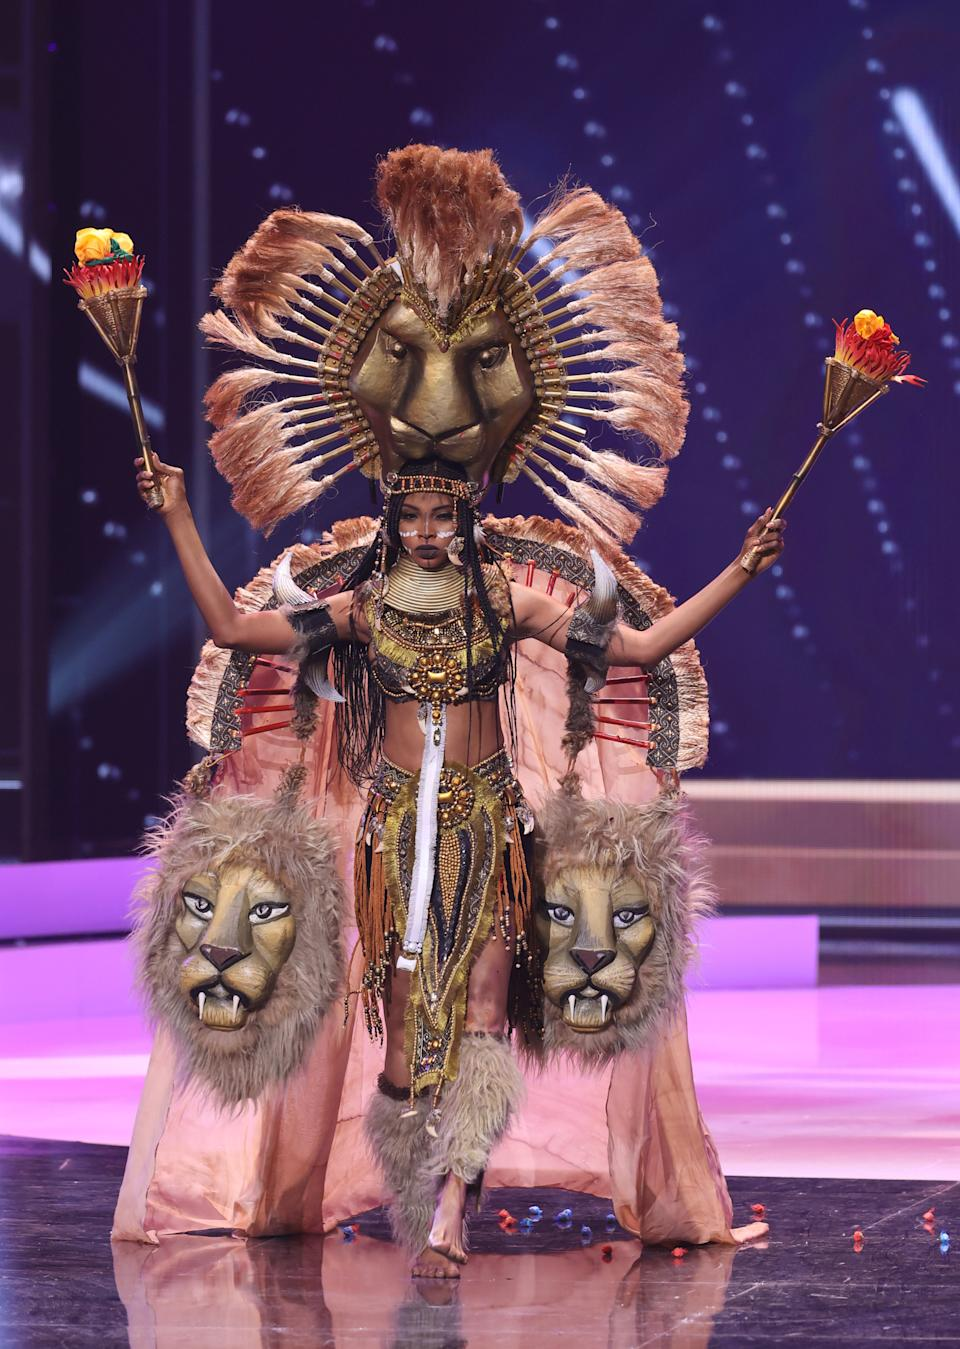 <p>Miss Cameroon Angele Kossinda appears onstage at the Miss Universe 2021 - National Costume Show at Seminole Hard Rock Hotel & Casino on May 13, 2021 in Hollywood, Florida. (Photo by Rodrigo Varela/Getty Images)</p>